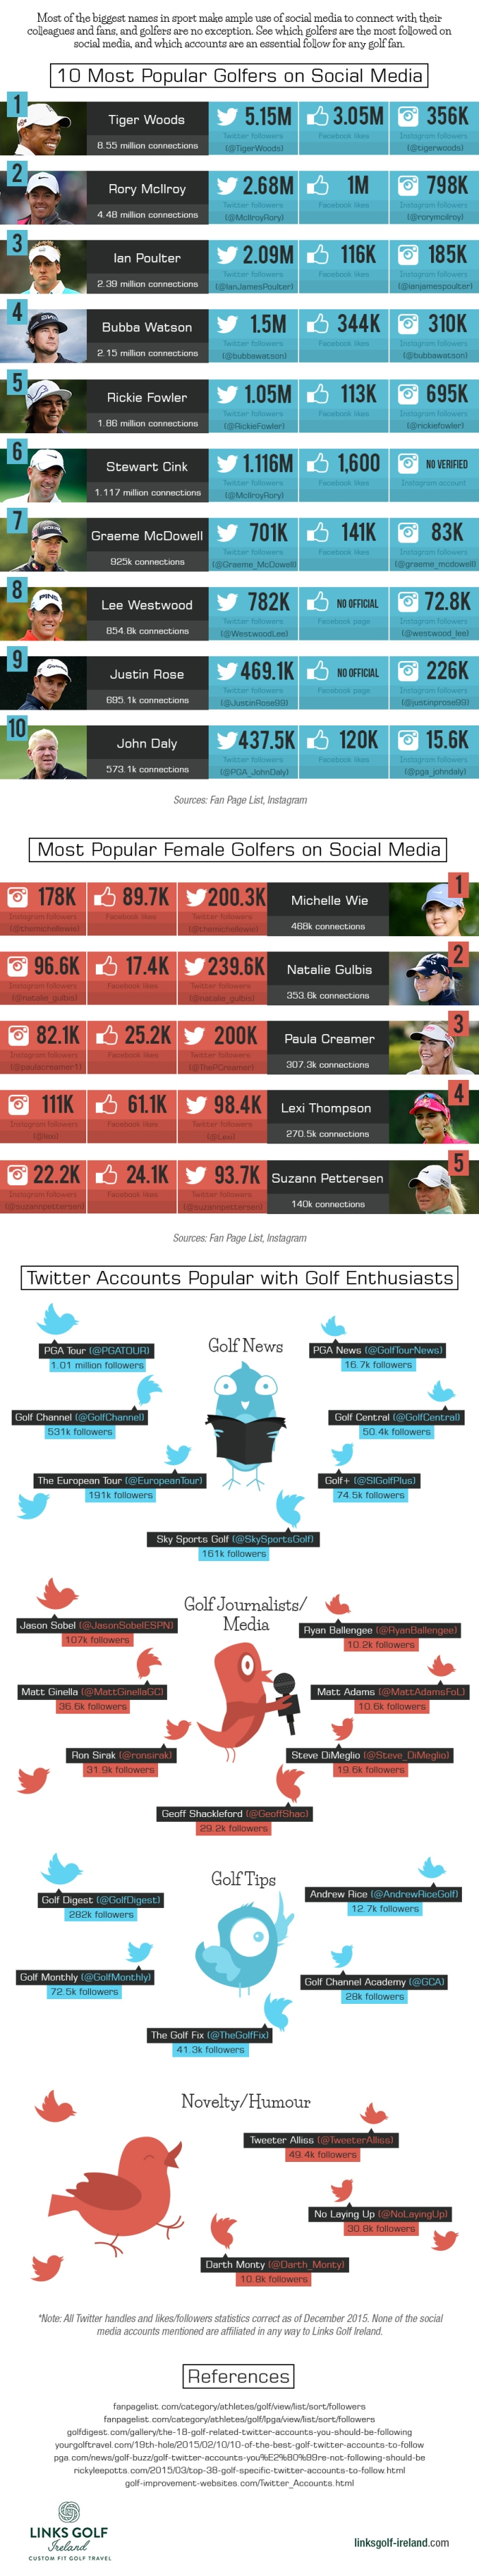 Top-Golf-Accounts-on-Social Media-IG-2.jpg